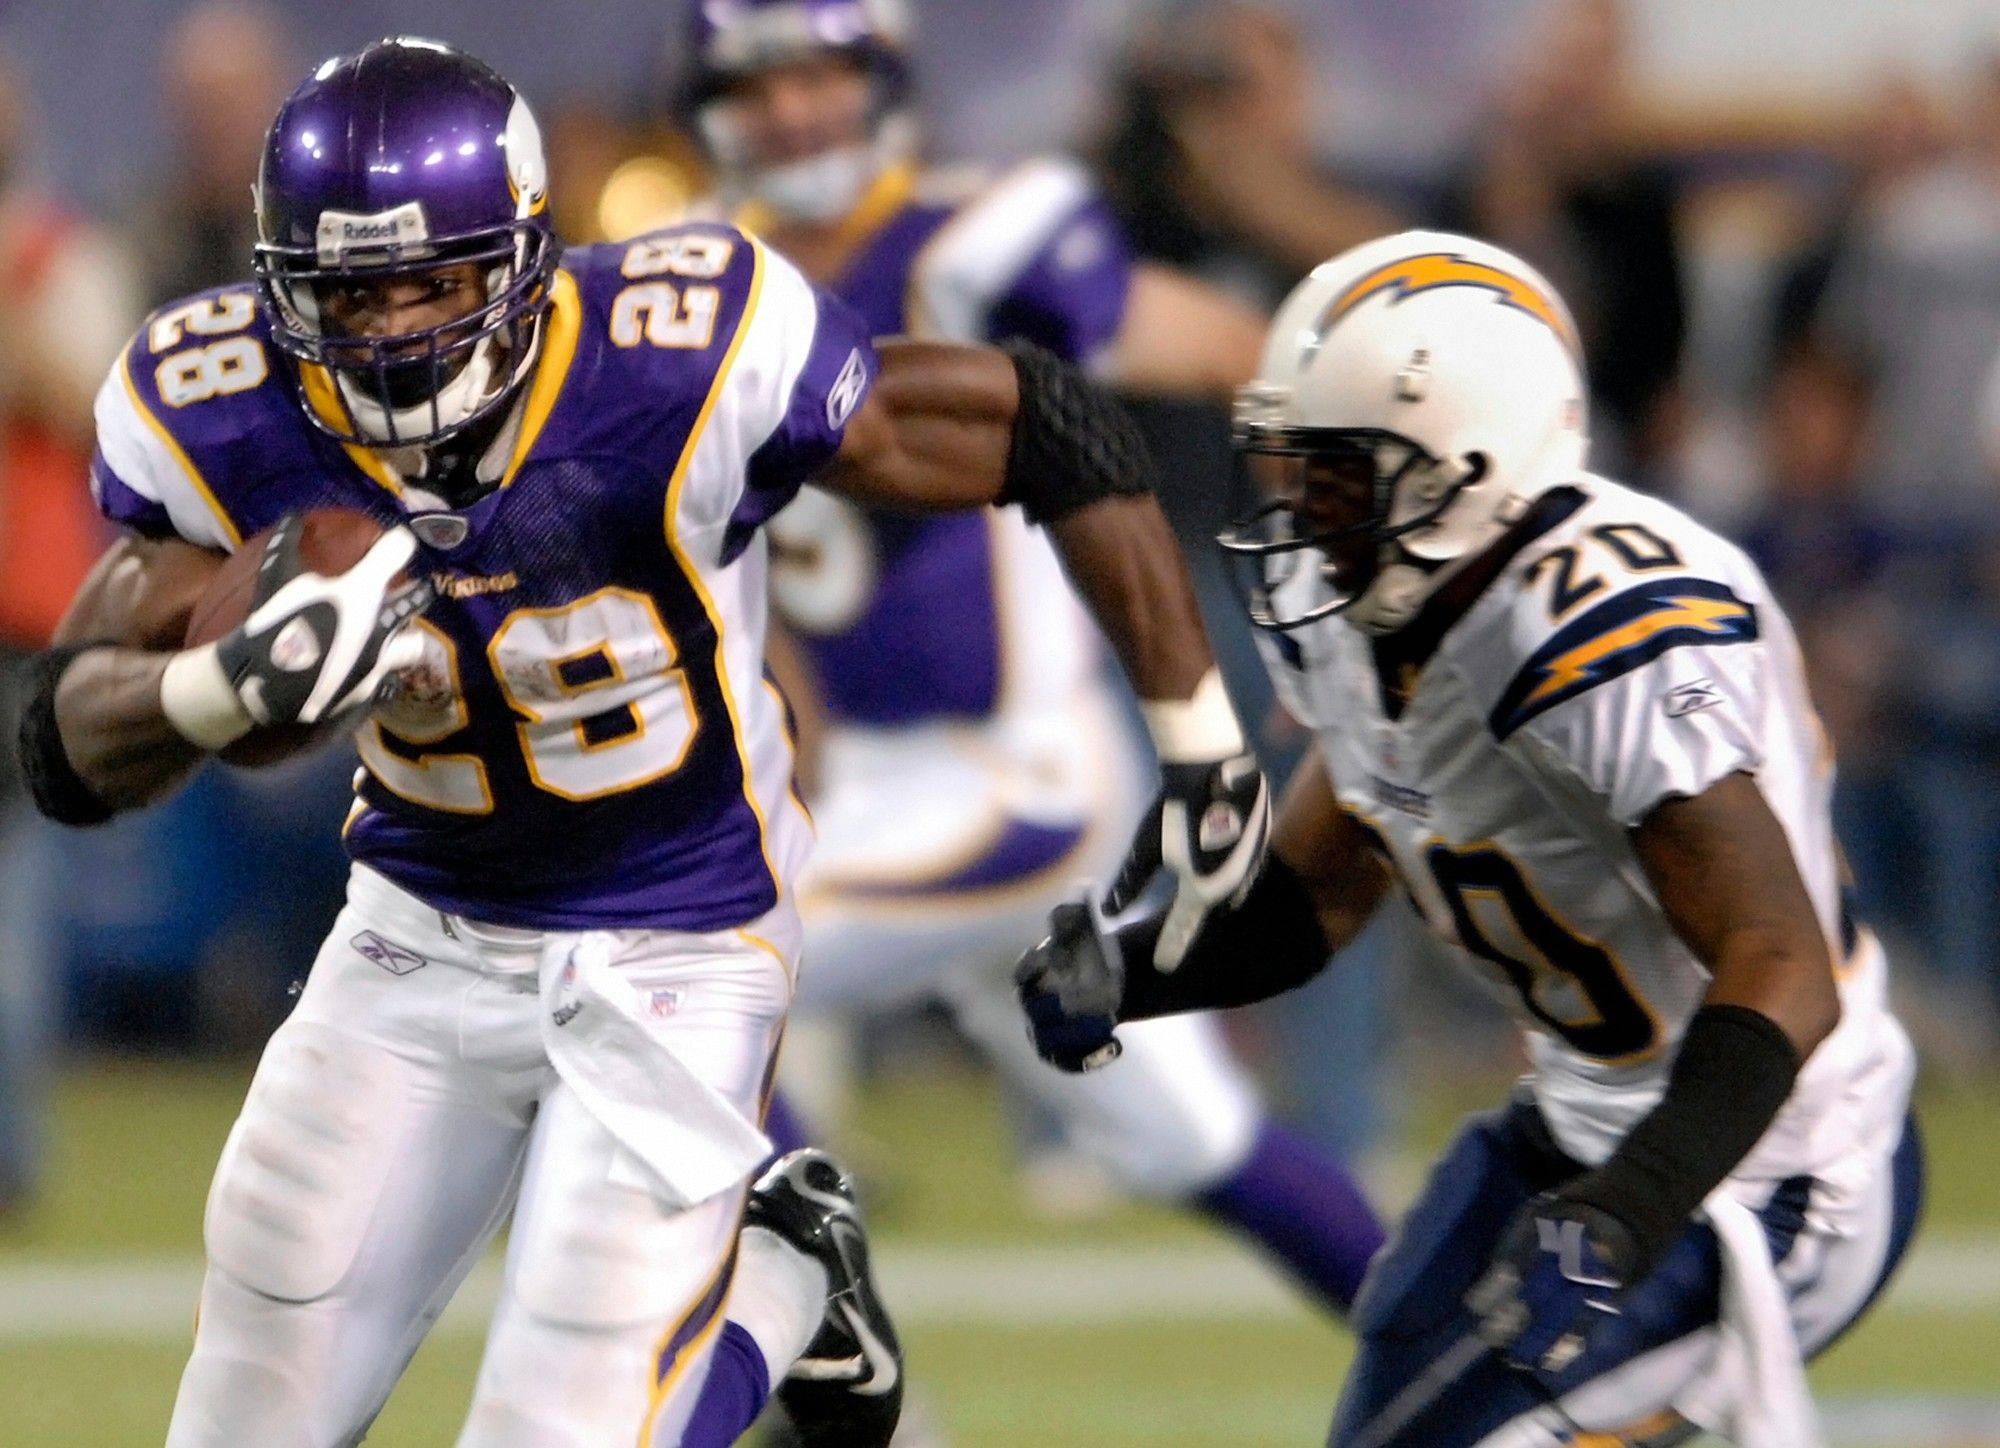 Adrian Peterson agreed Saturday to a contract extension with the Vikings that includes $36 million in guaranteed money and as much as $100 million over the next seven years if he plays that long with Minnesota.